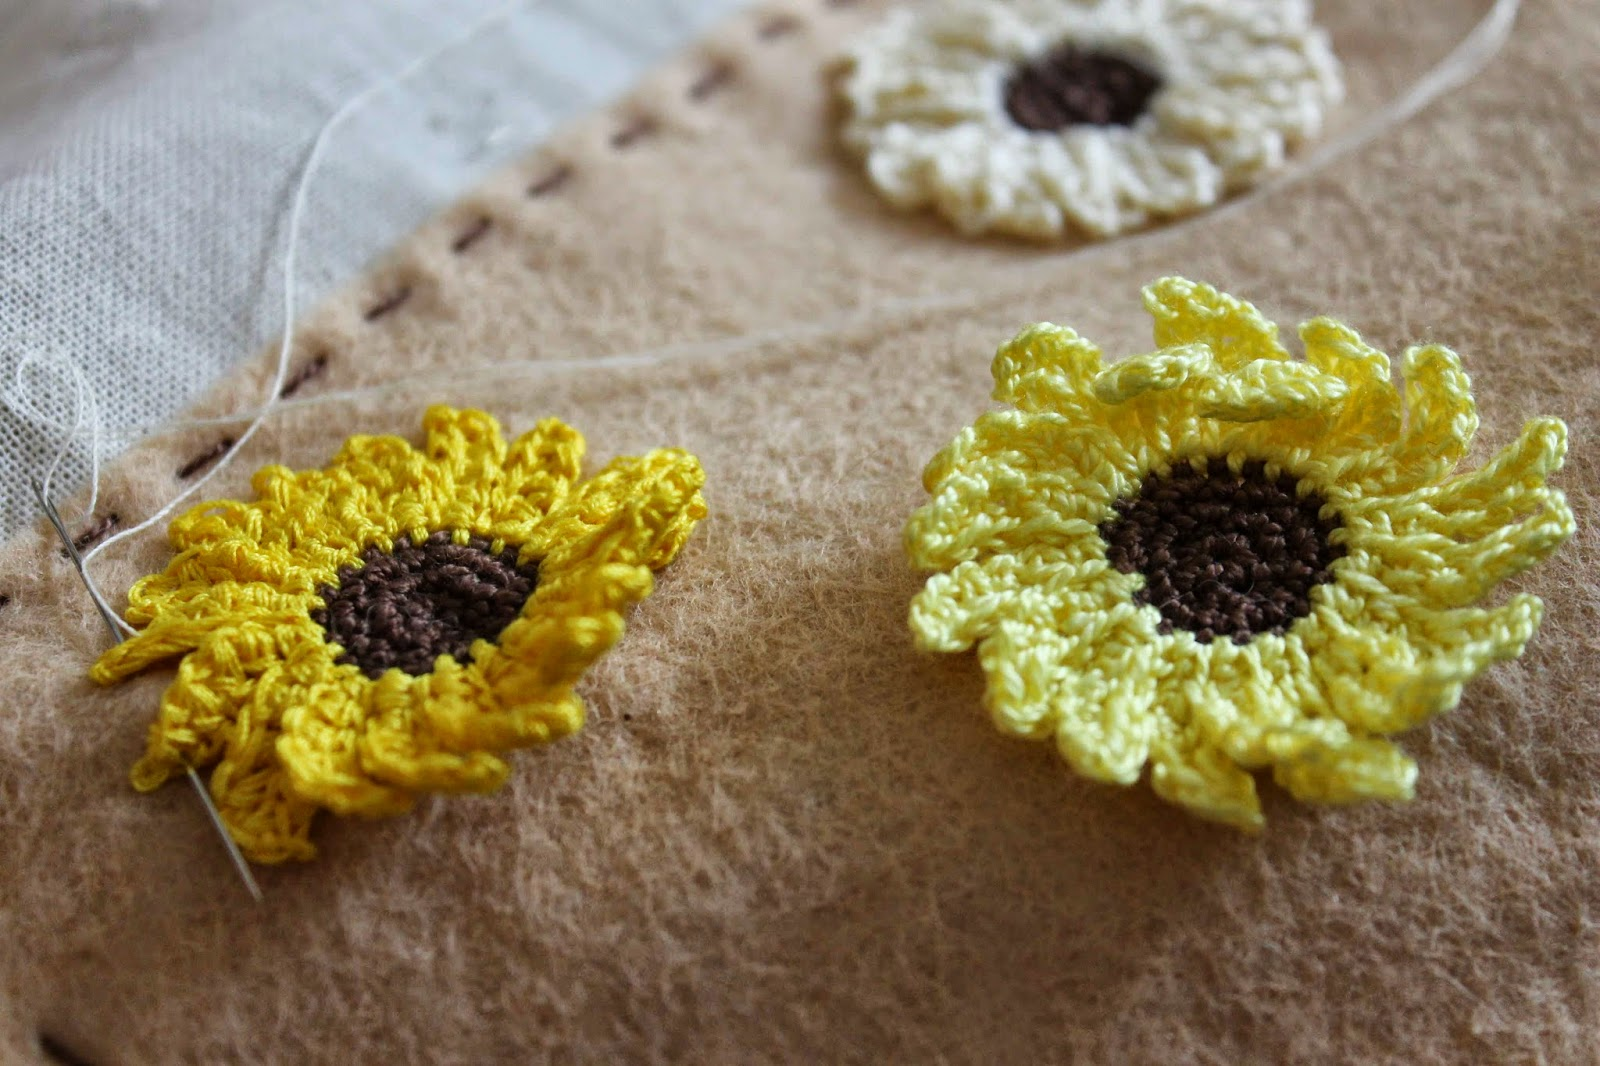 Sewing on crochet sunflowers